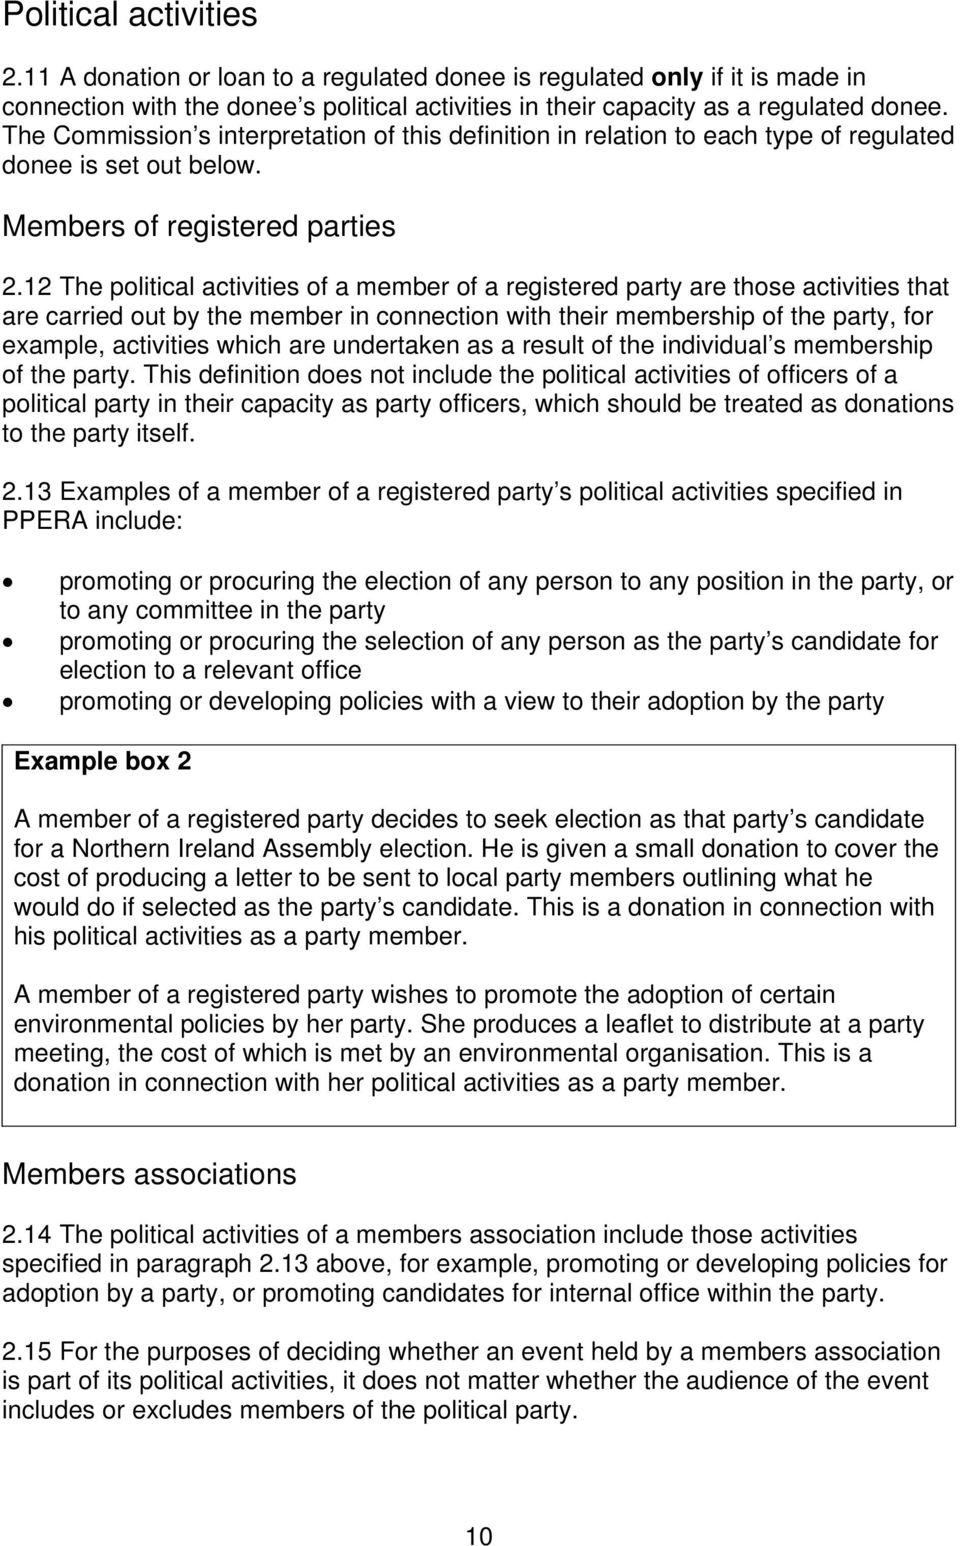 12 The political activities of a member of a registered party are those activities that are carried out by the member in connection with their membership of the party, for example, activities which